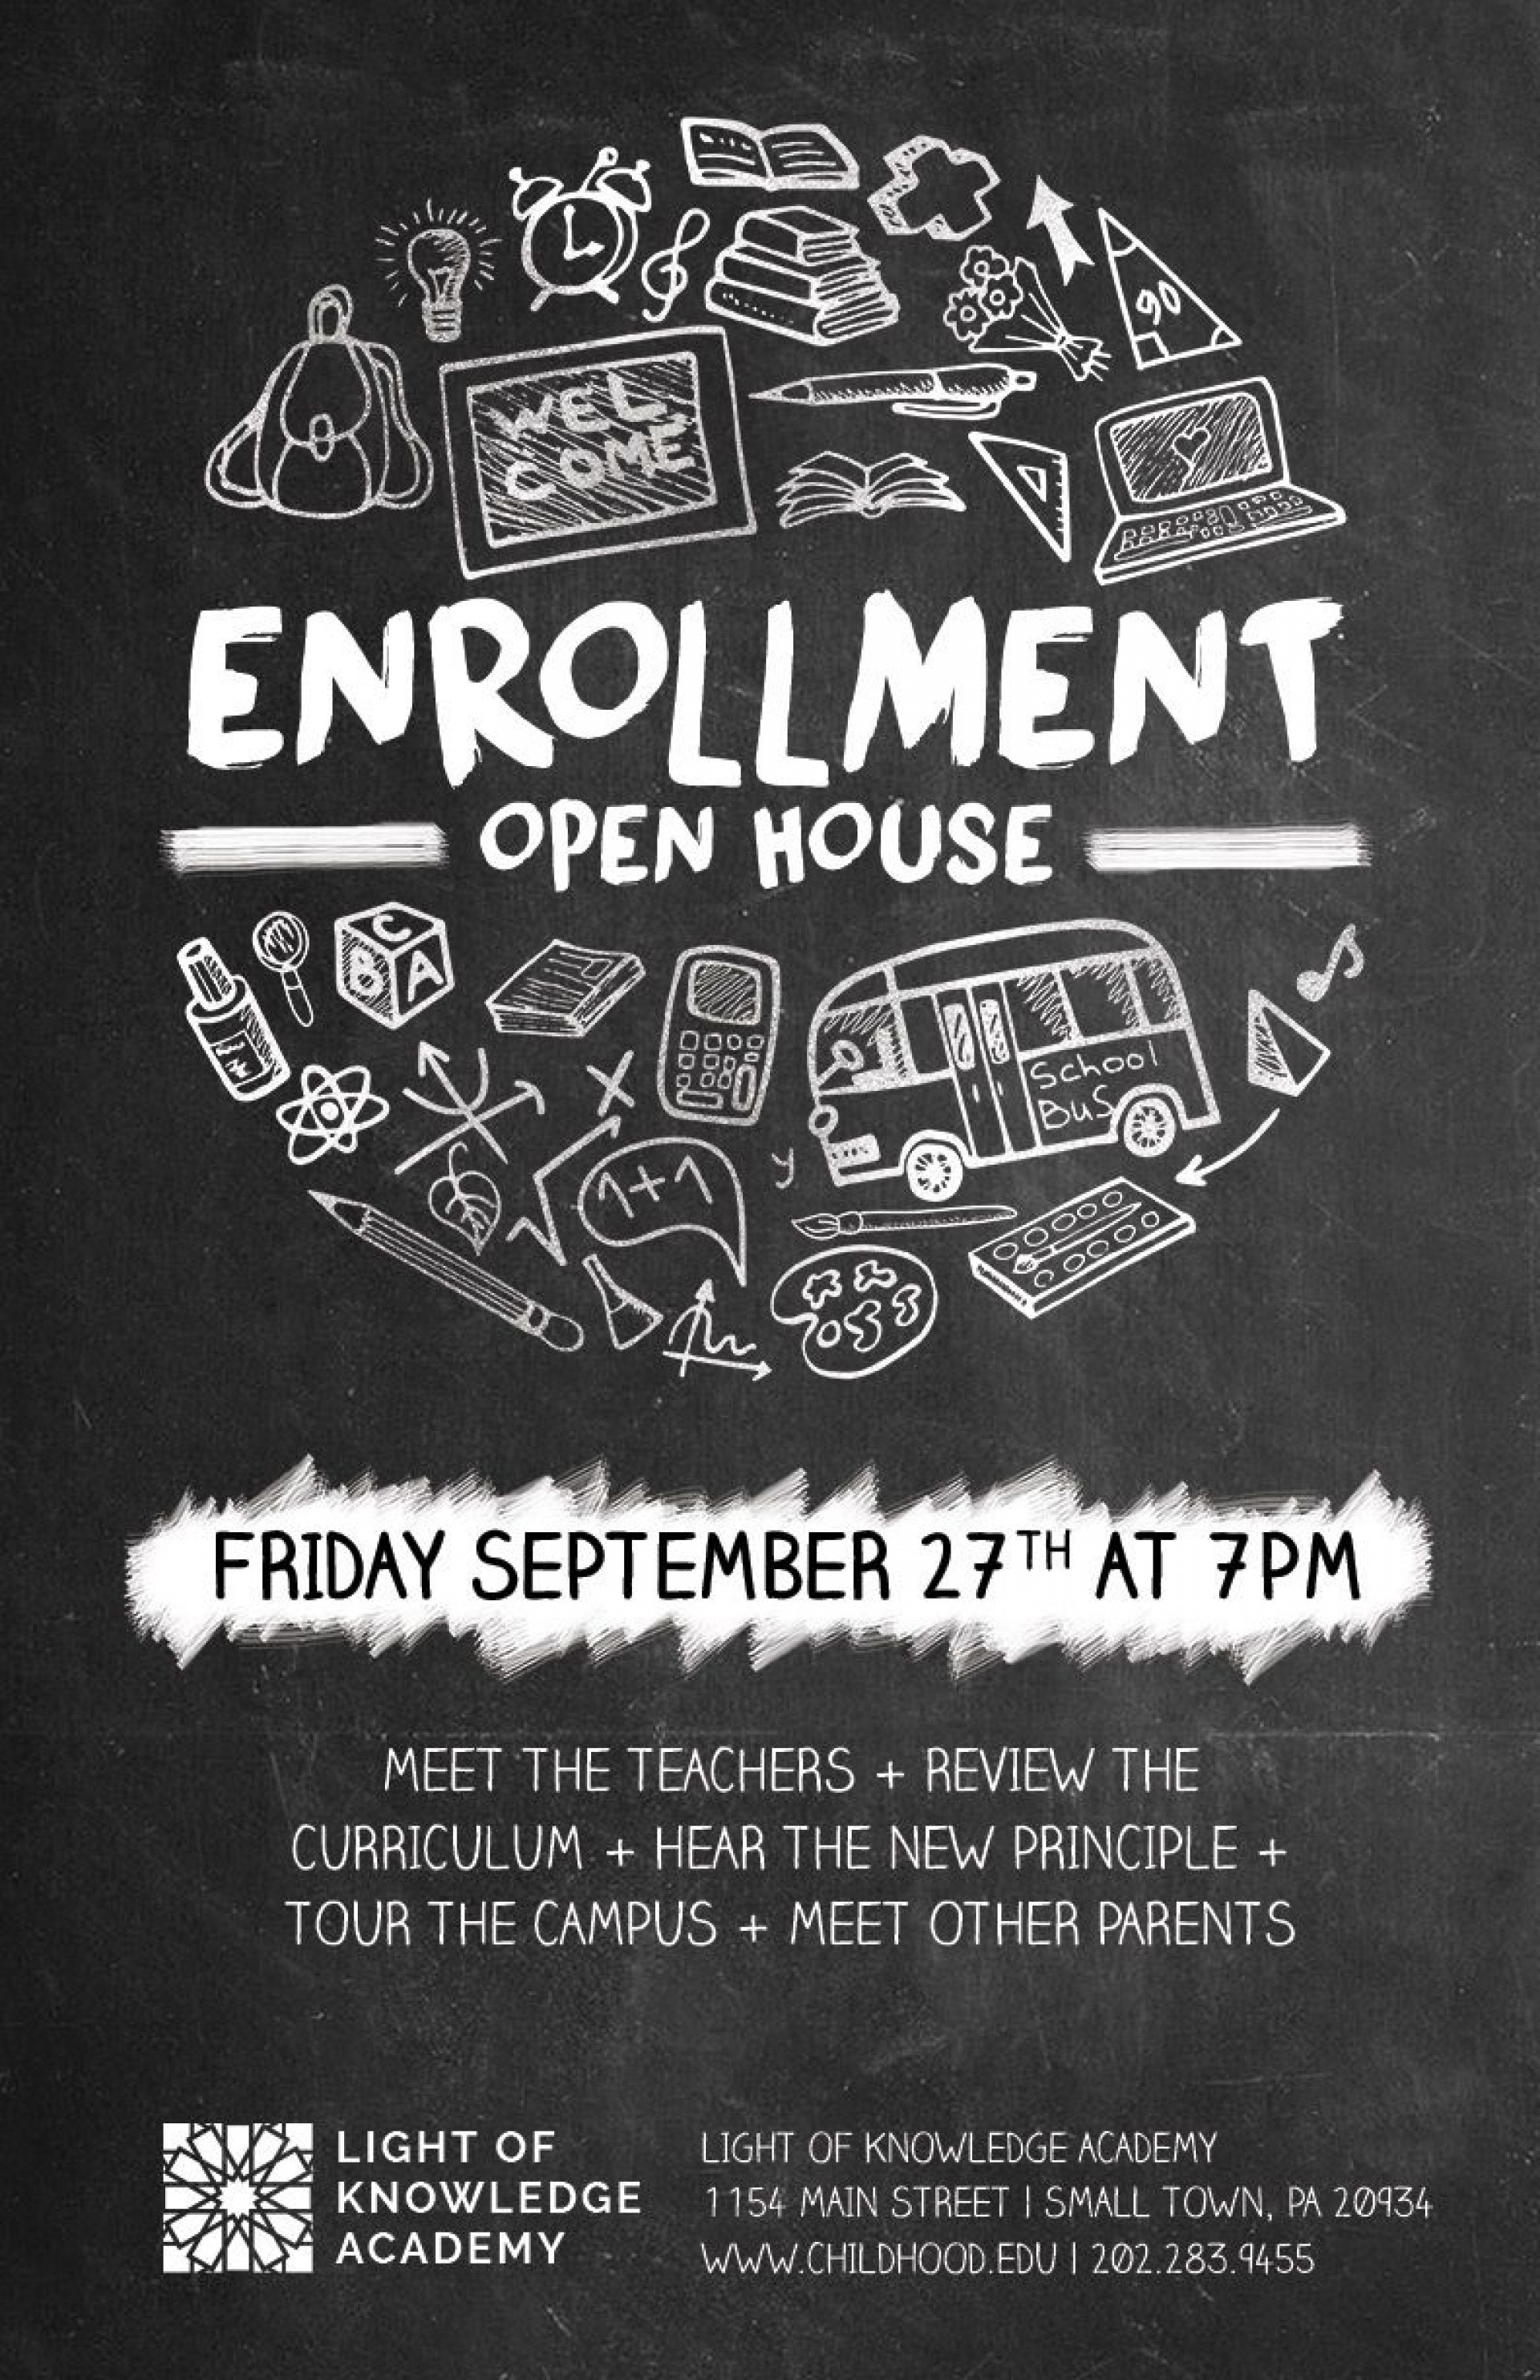 008 Staggering Open House Flyer Template High Definition  Templates Free School Microsoft1920